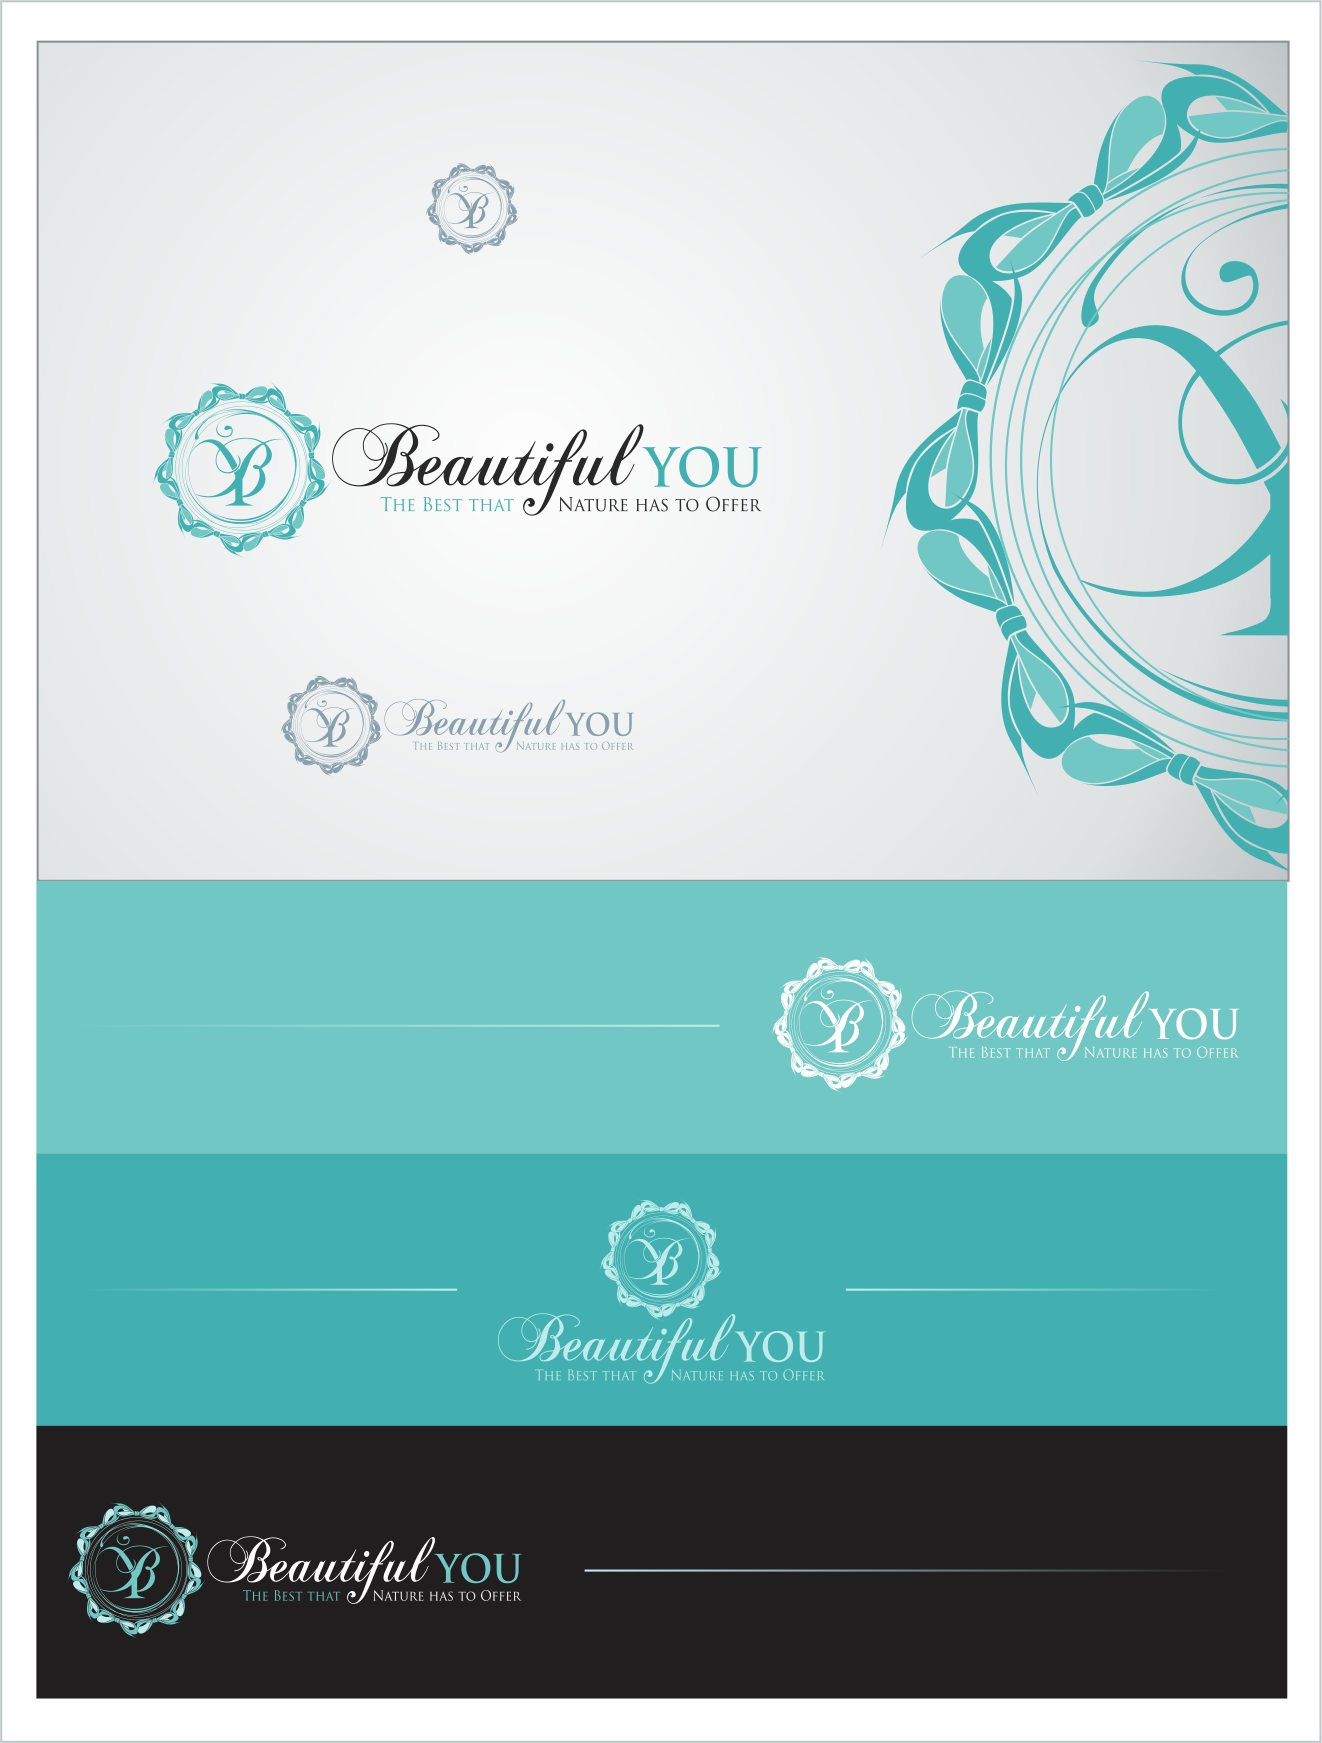 logo for Beautiful You